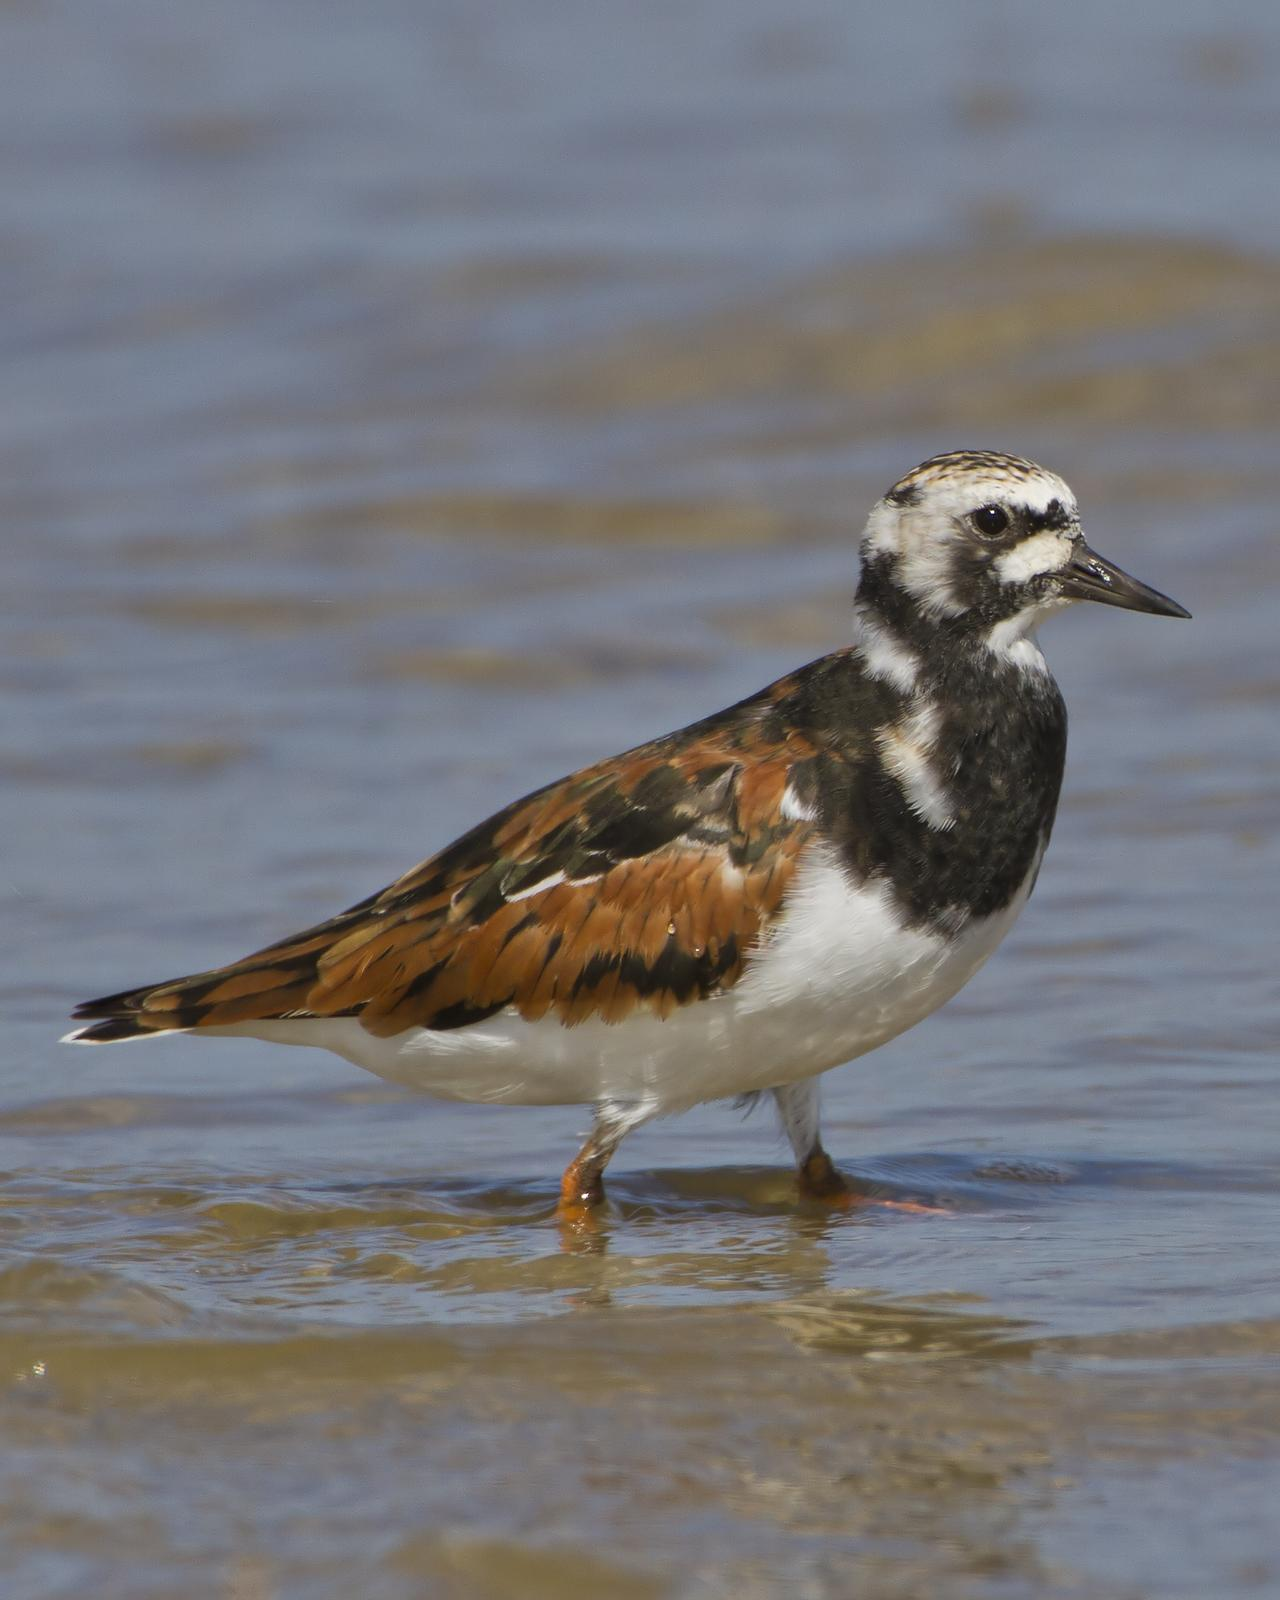 Ruddy Turnstone Photo by Bill Adams